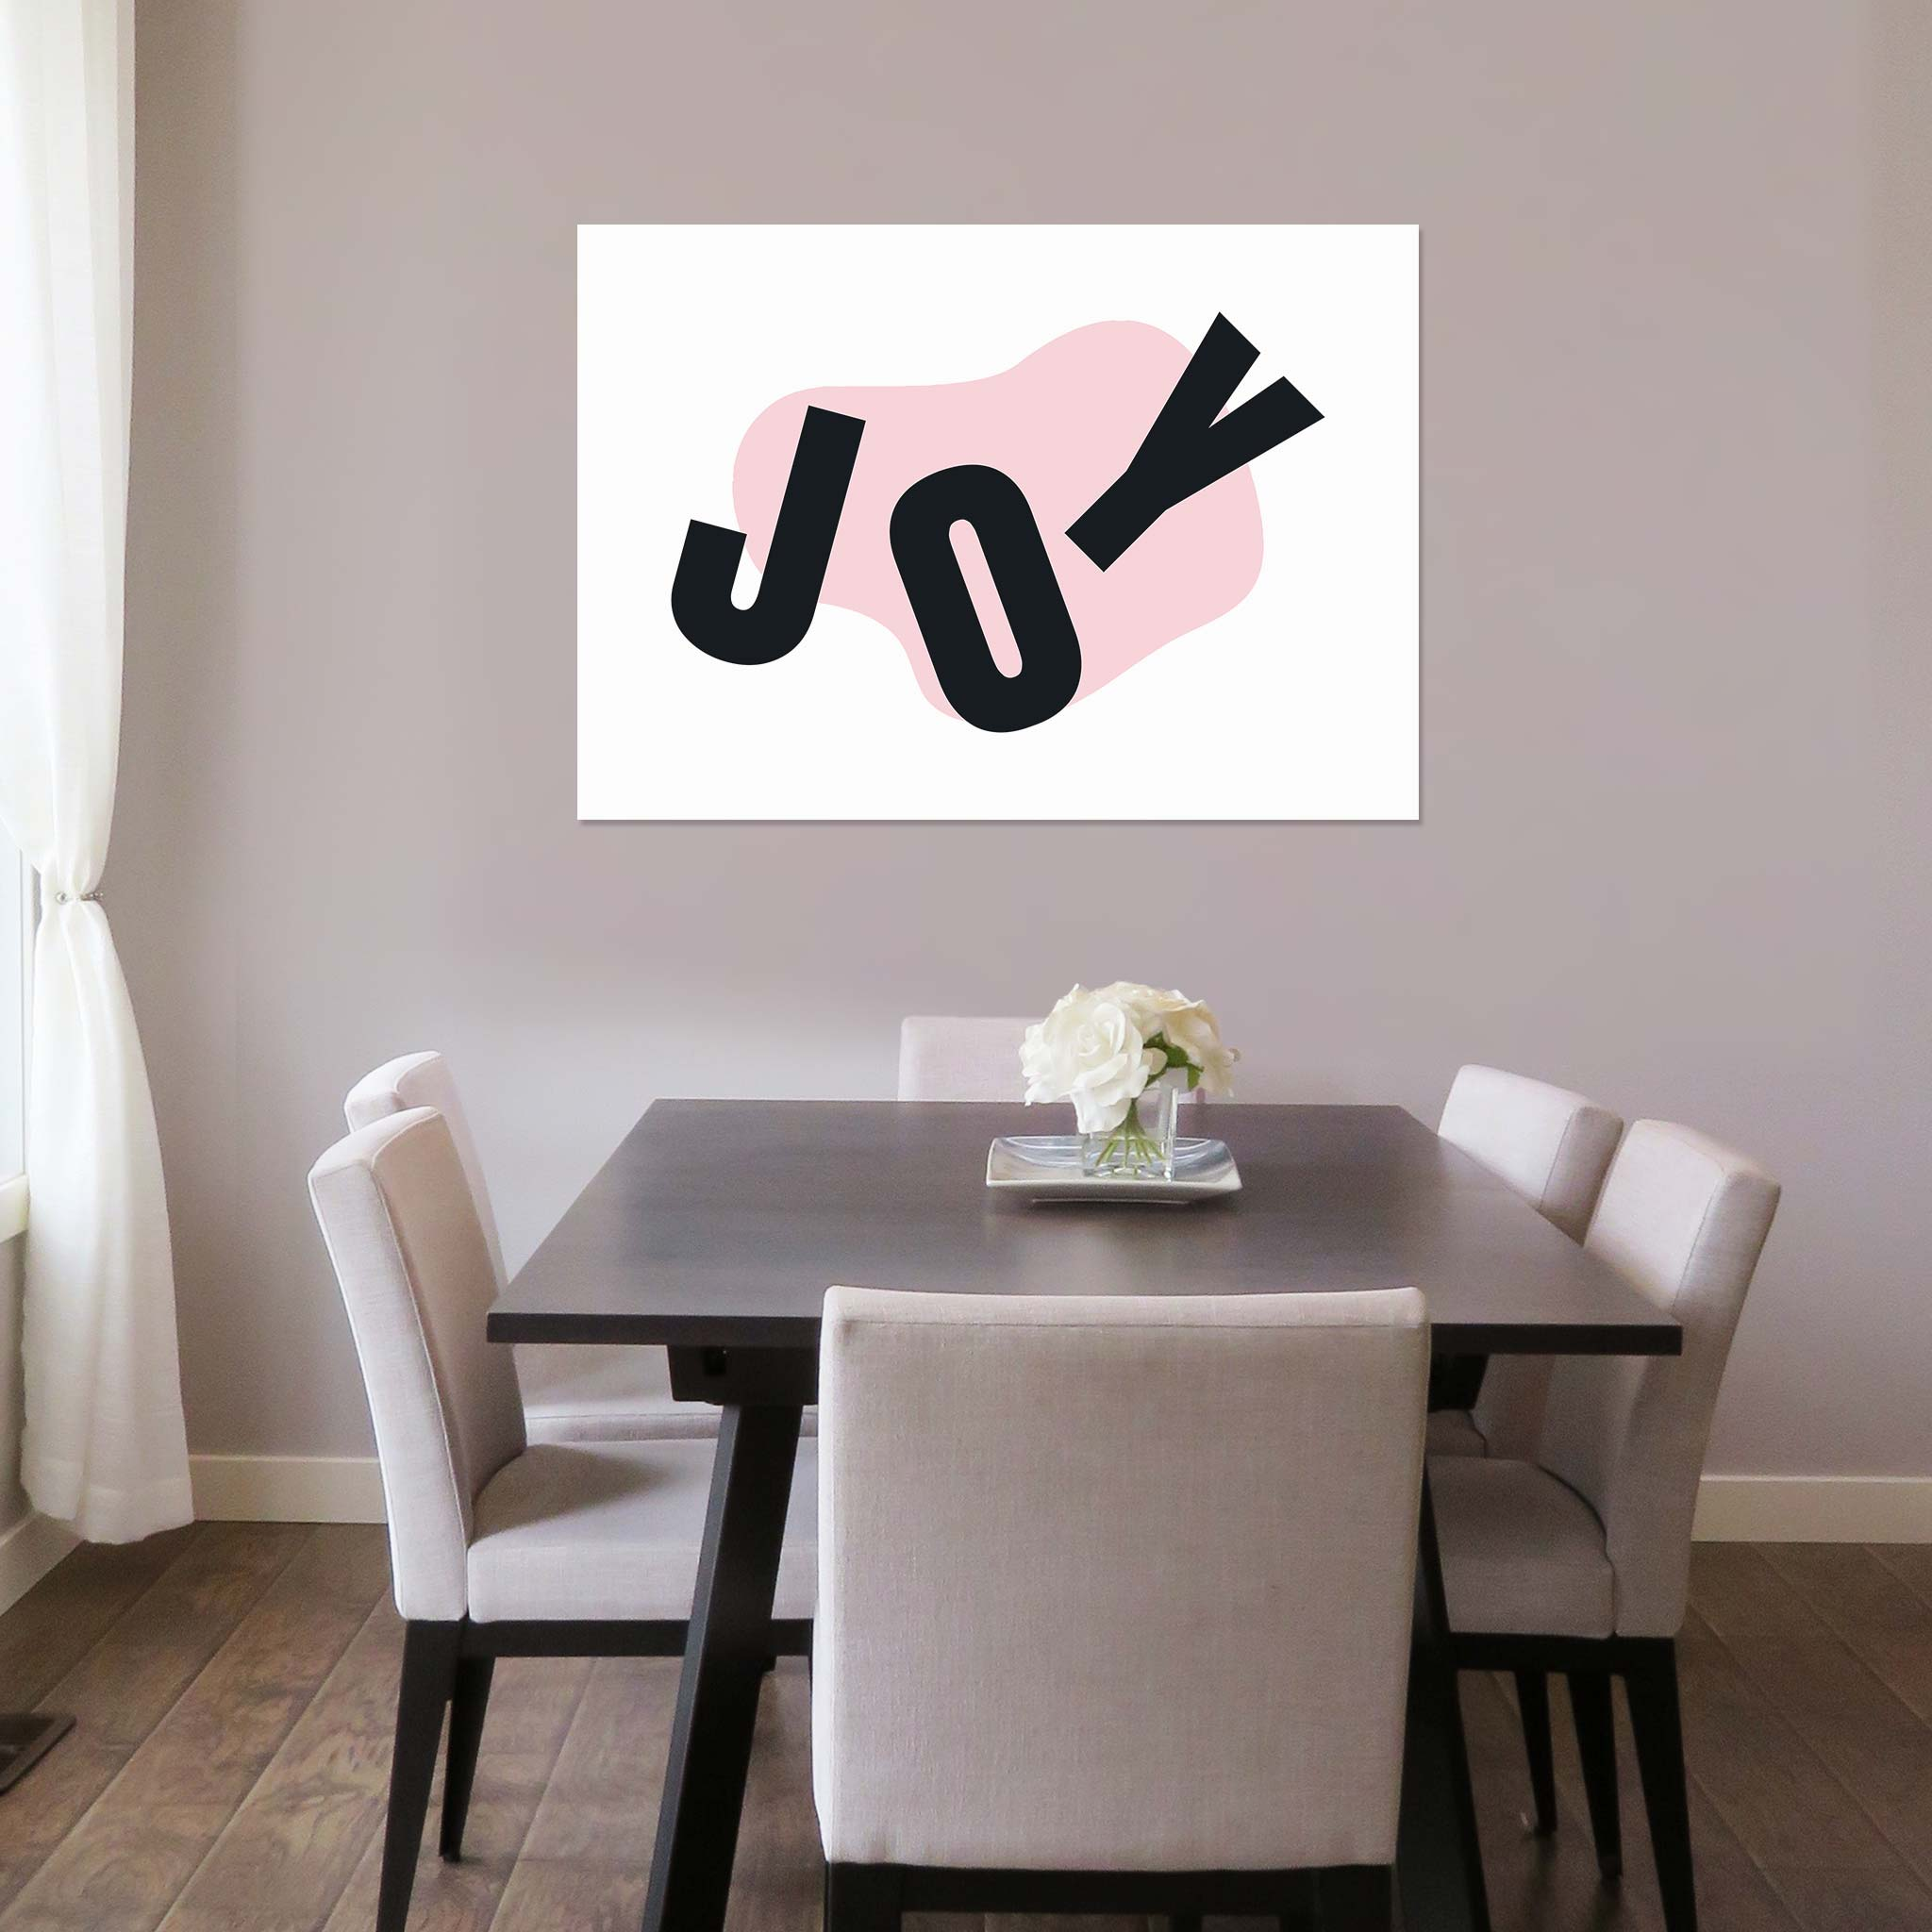 JOY (large letters spread across the canvas)